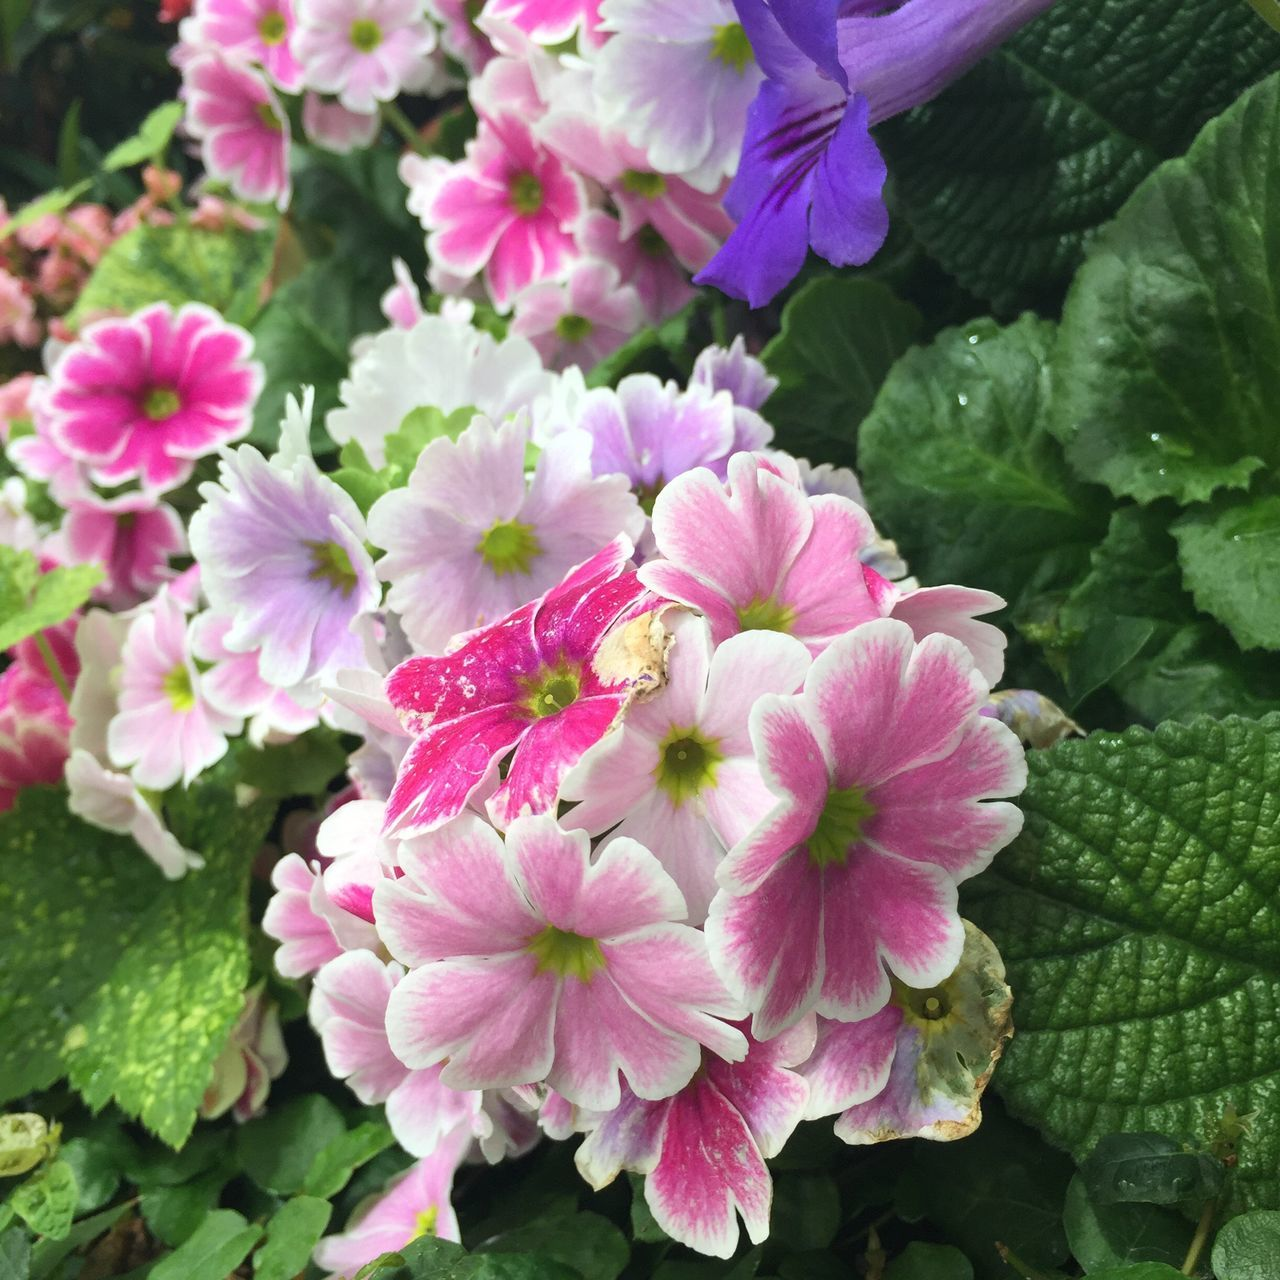 Pastel colors! Flower Fragility Freshness Petal Nature Growth Beauty In Nature Pink Color Flower Head Plant Close-up Blooming No People Day Outdoors